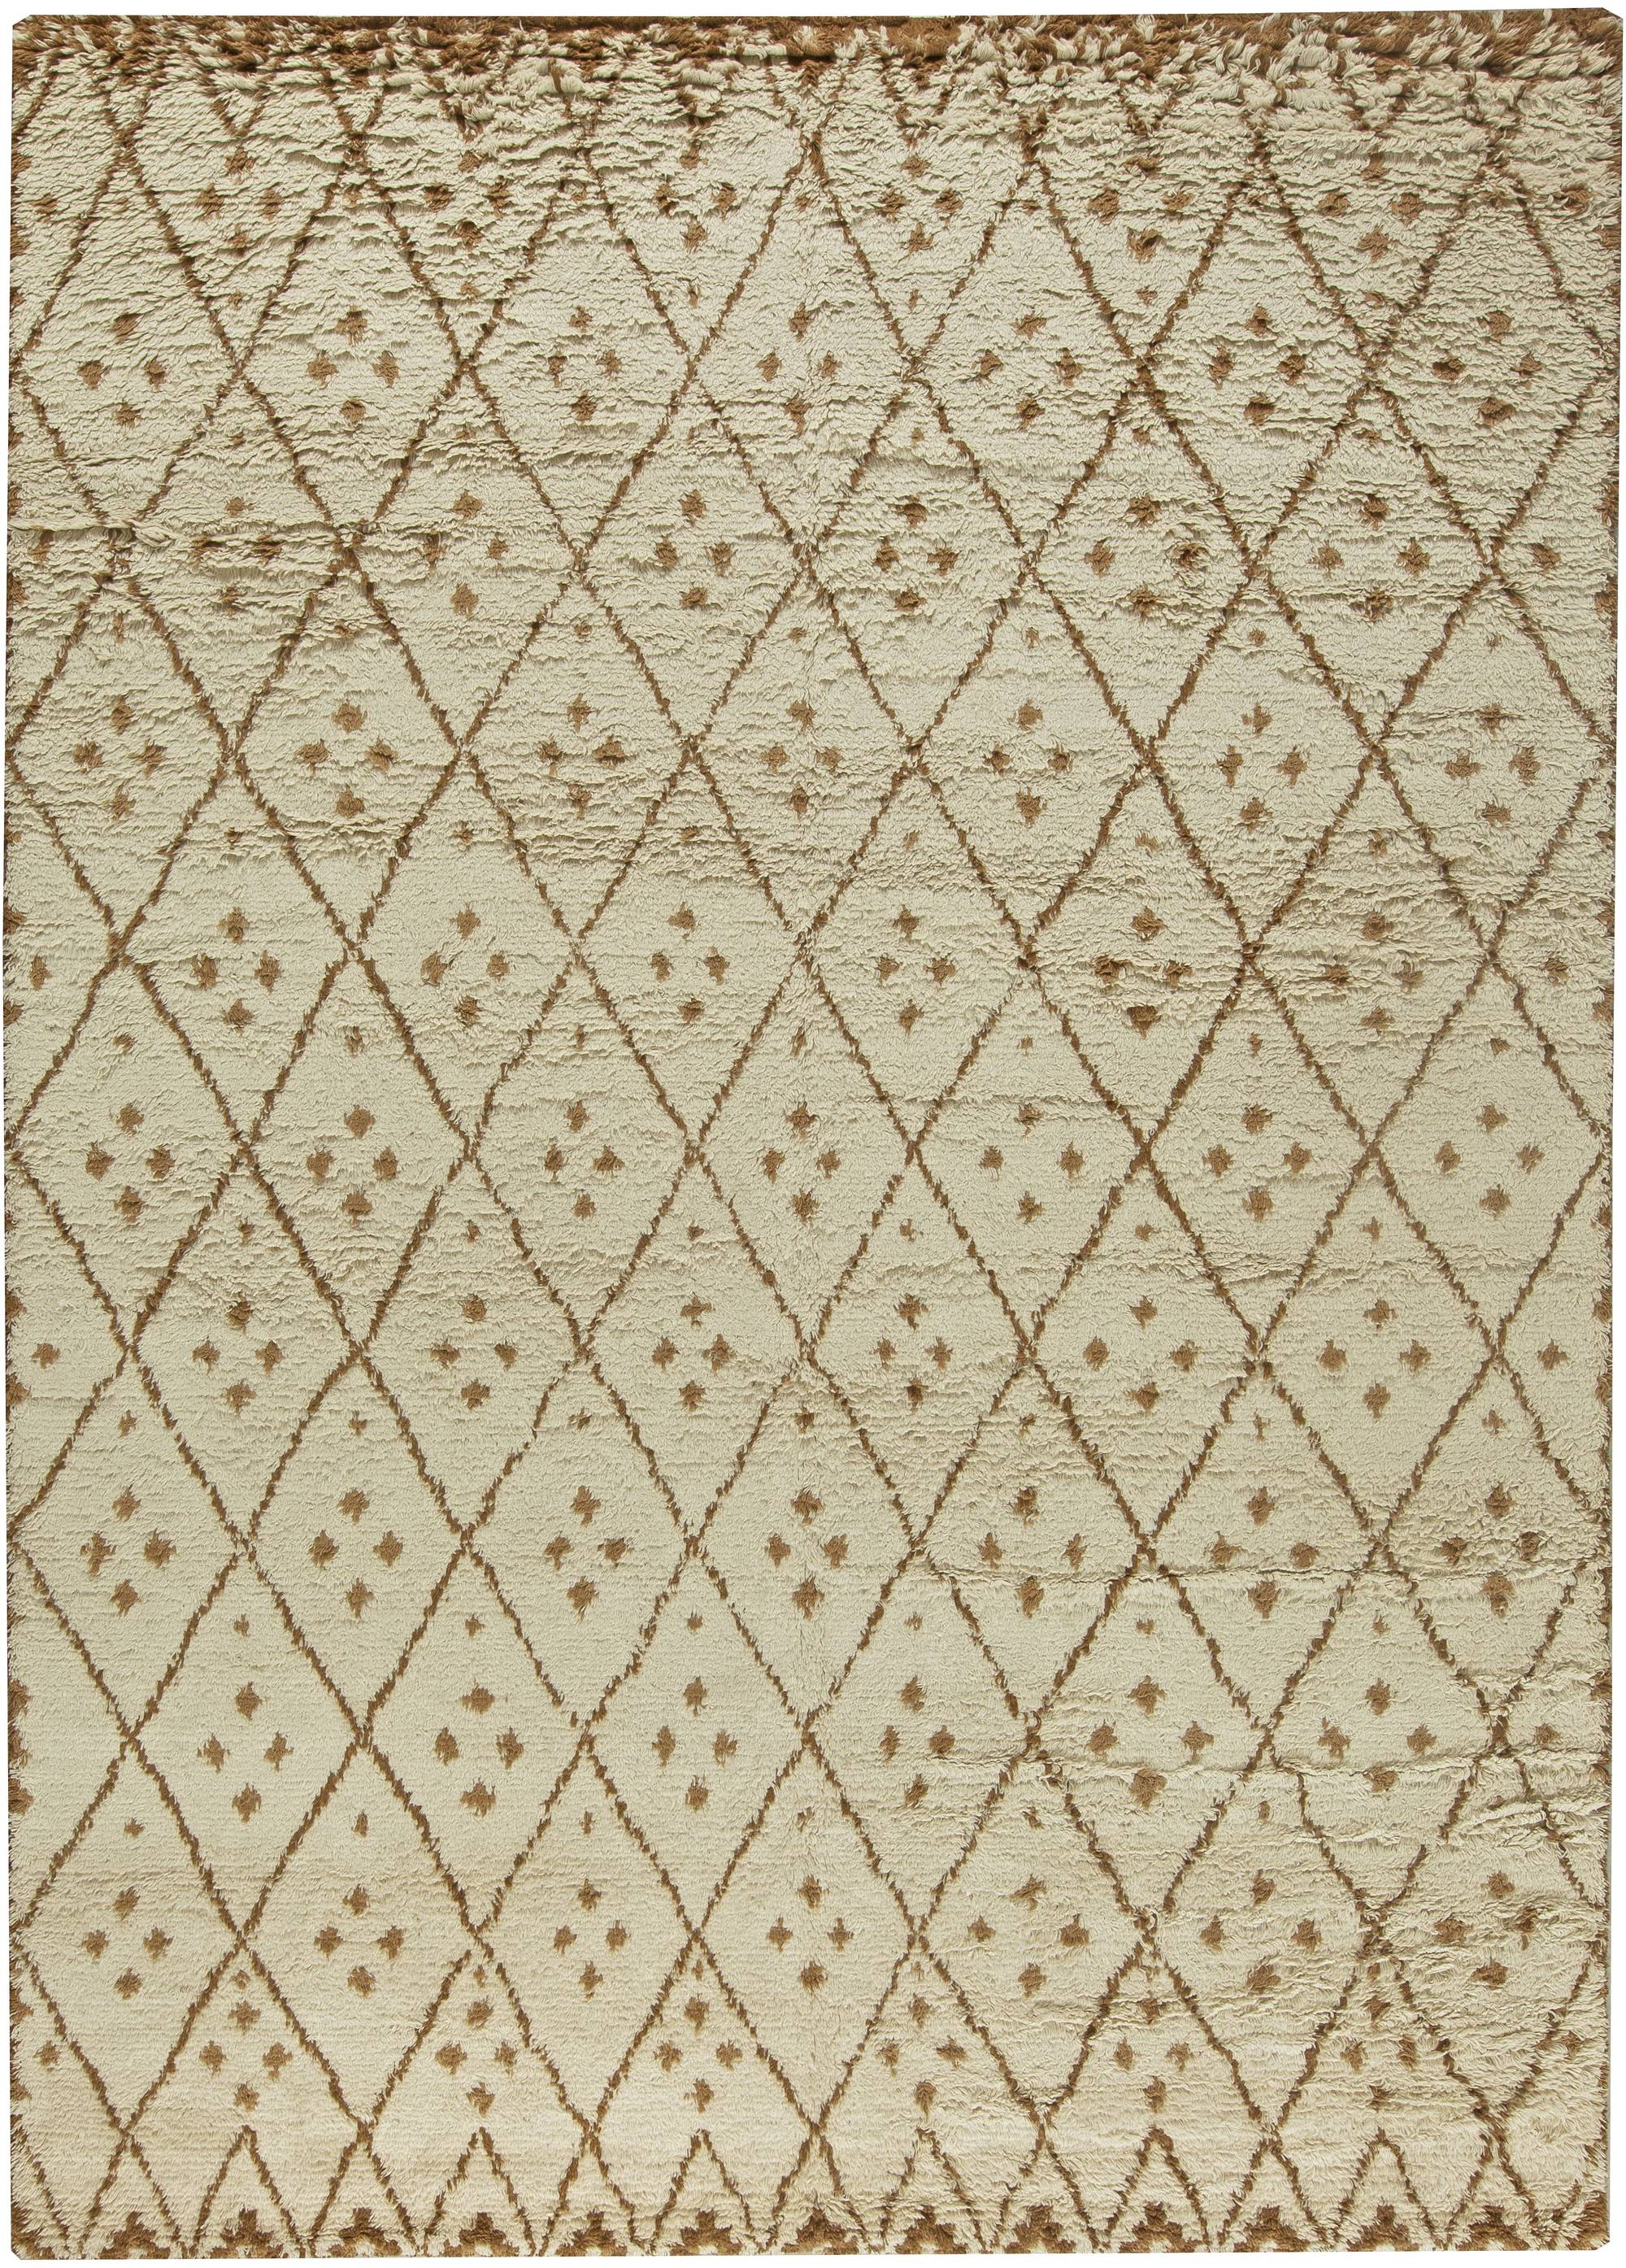 Hygge Up For Winter: Introducing Shaggy Rya Rugs and Beni Ourains 15